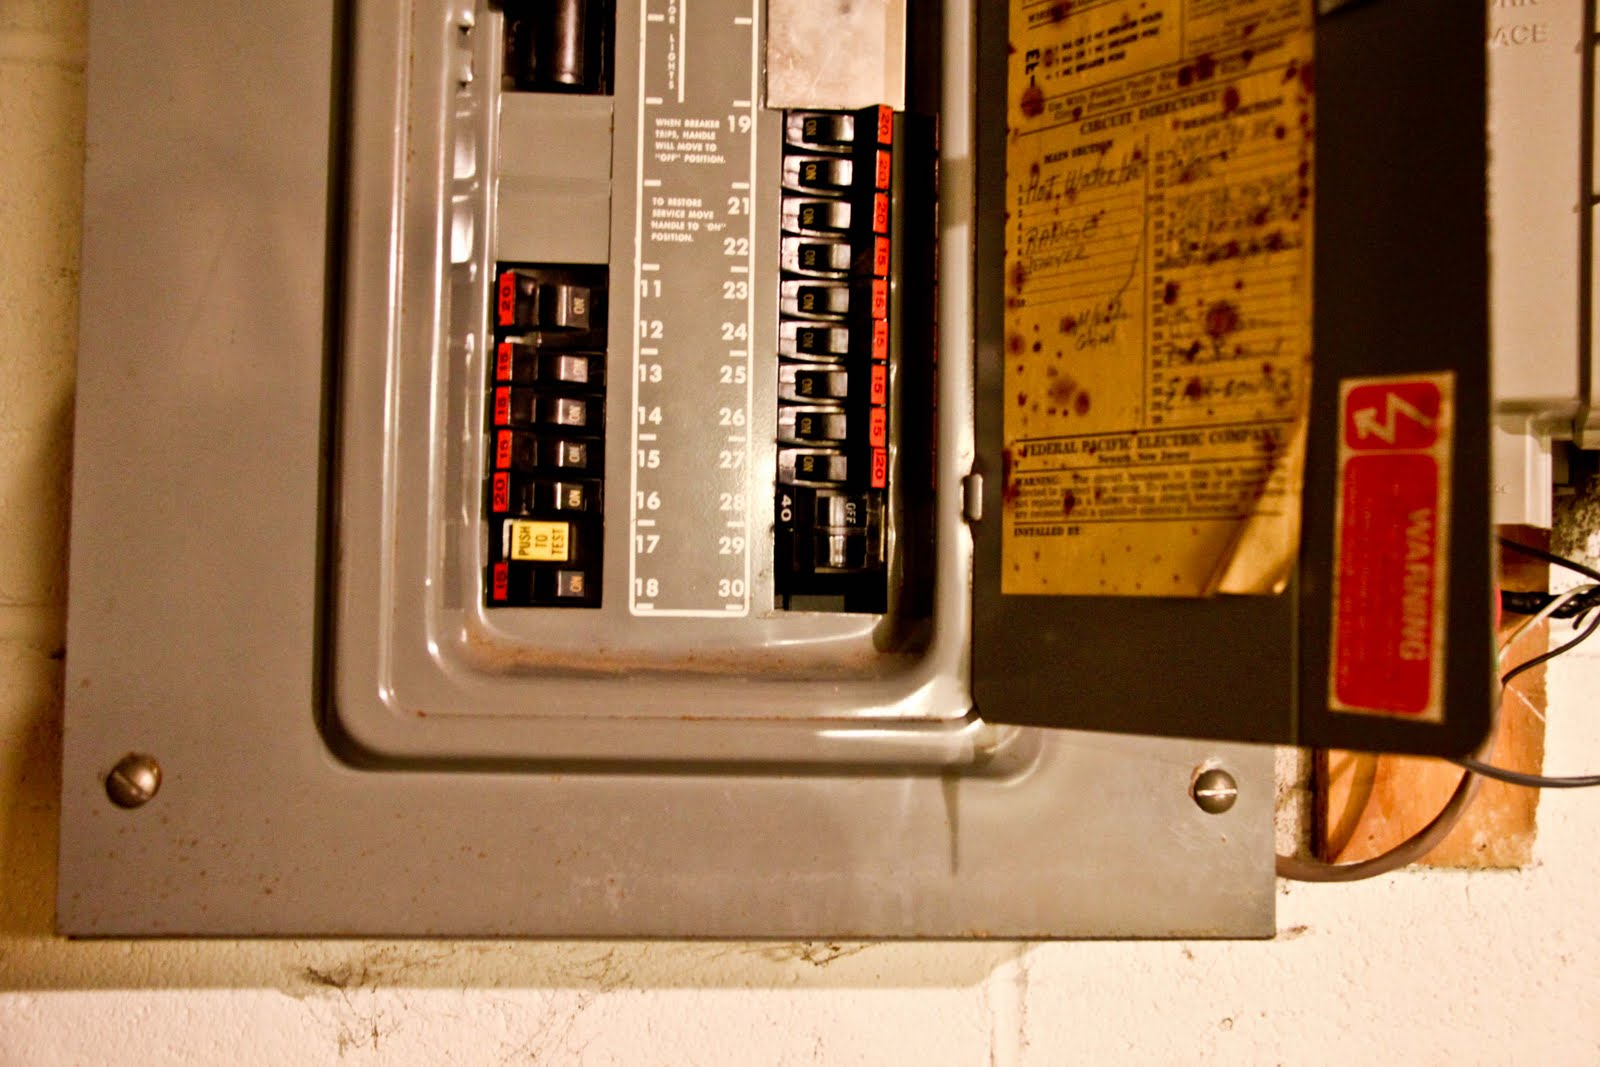 IMG_4614 replacing fuse on central ac unit work space how to fix a fuse box in a house at bayanpartner.co